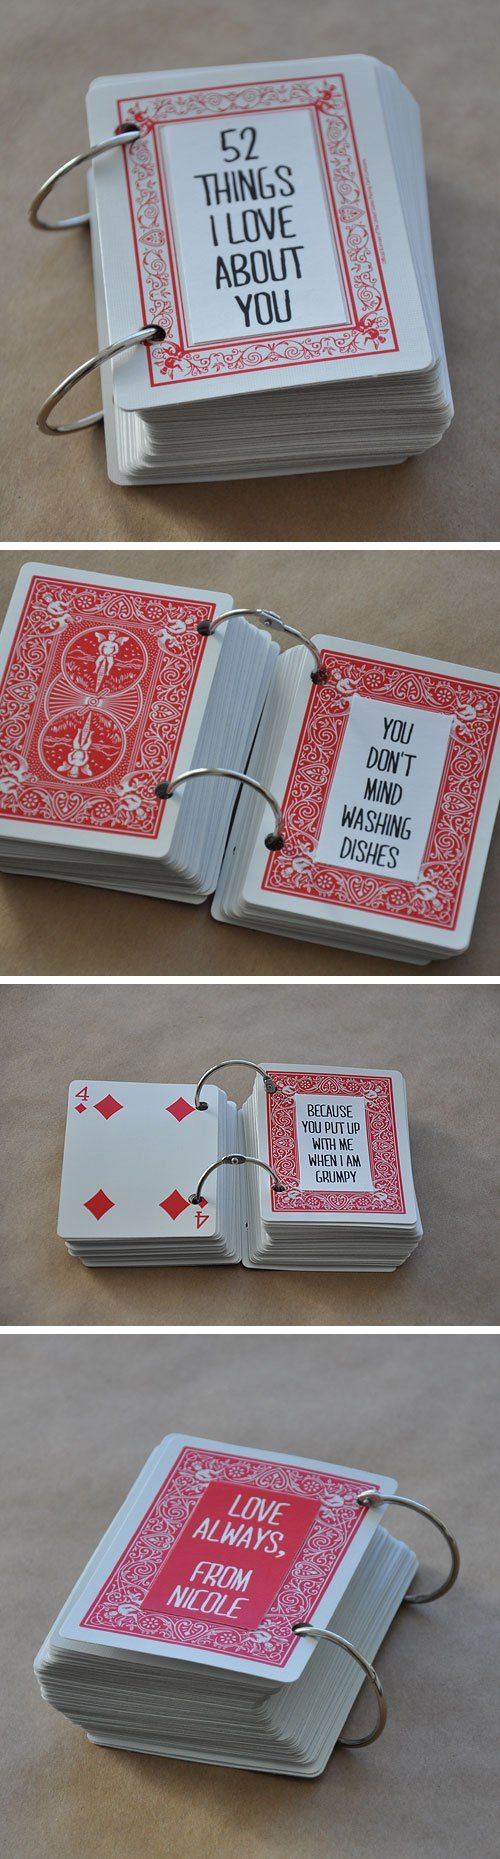 Homemade Gifts: Love how this requires you to be creative with what you write on...